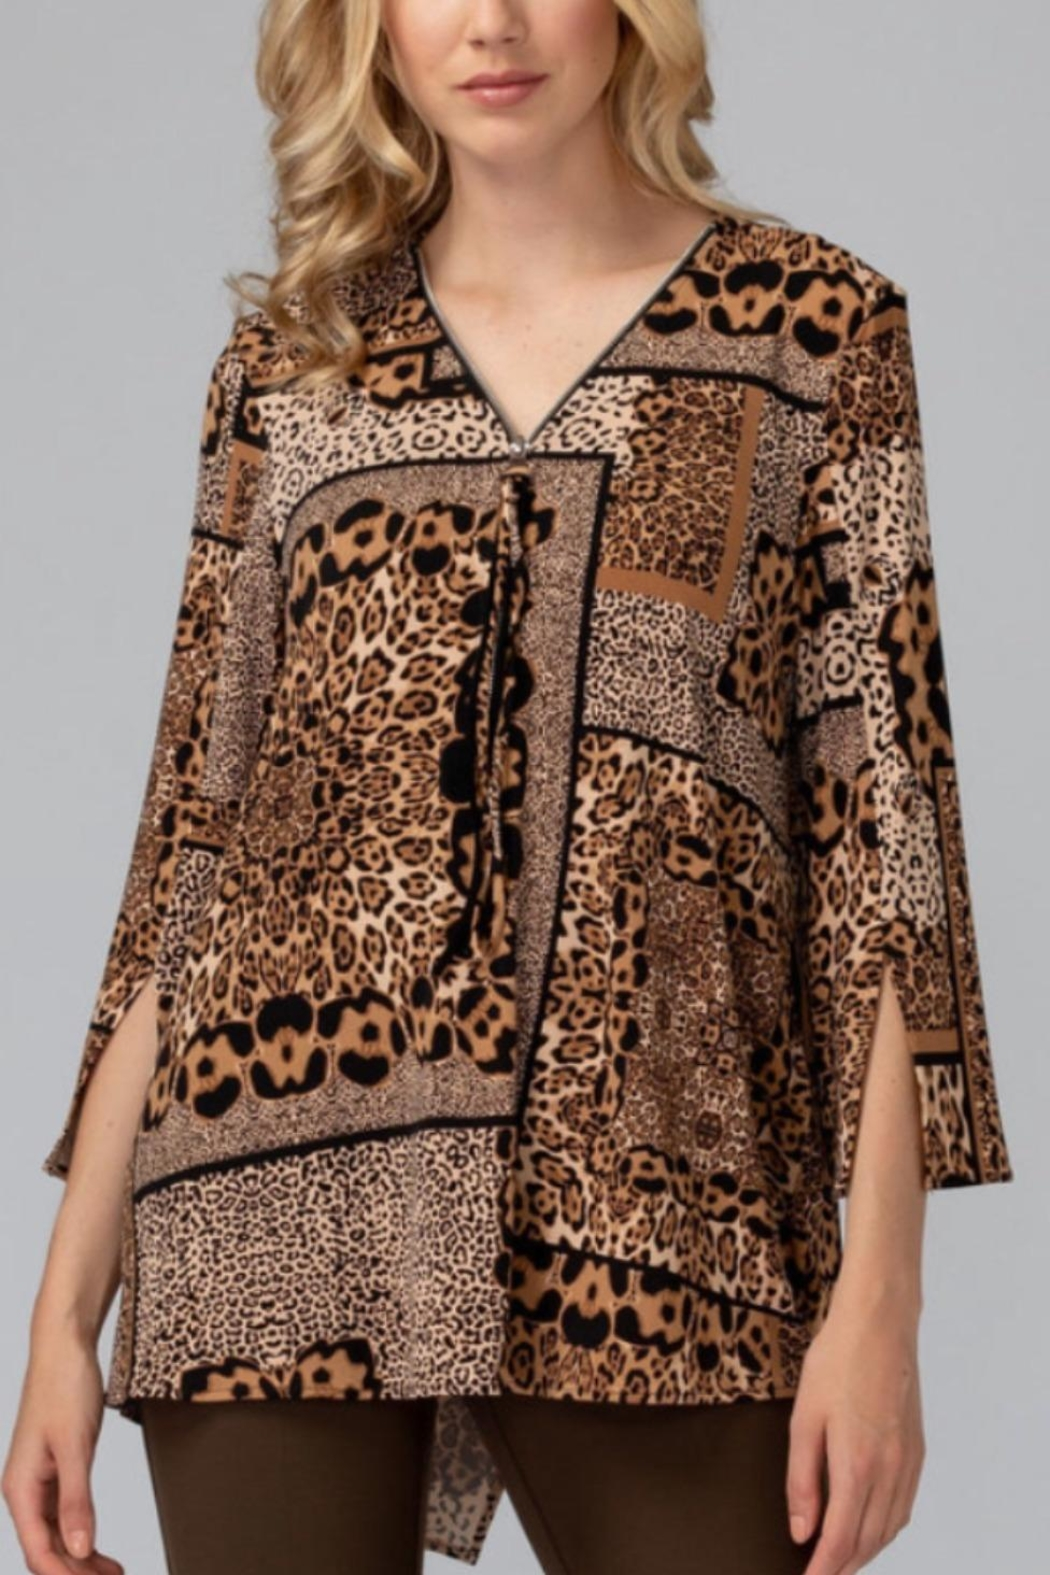 Joseph Ribkoff Animal Print Top - Main Image